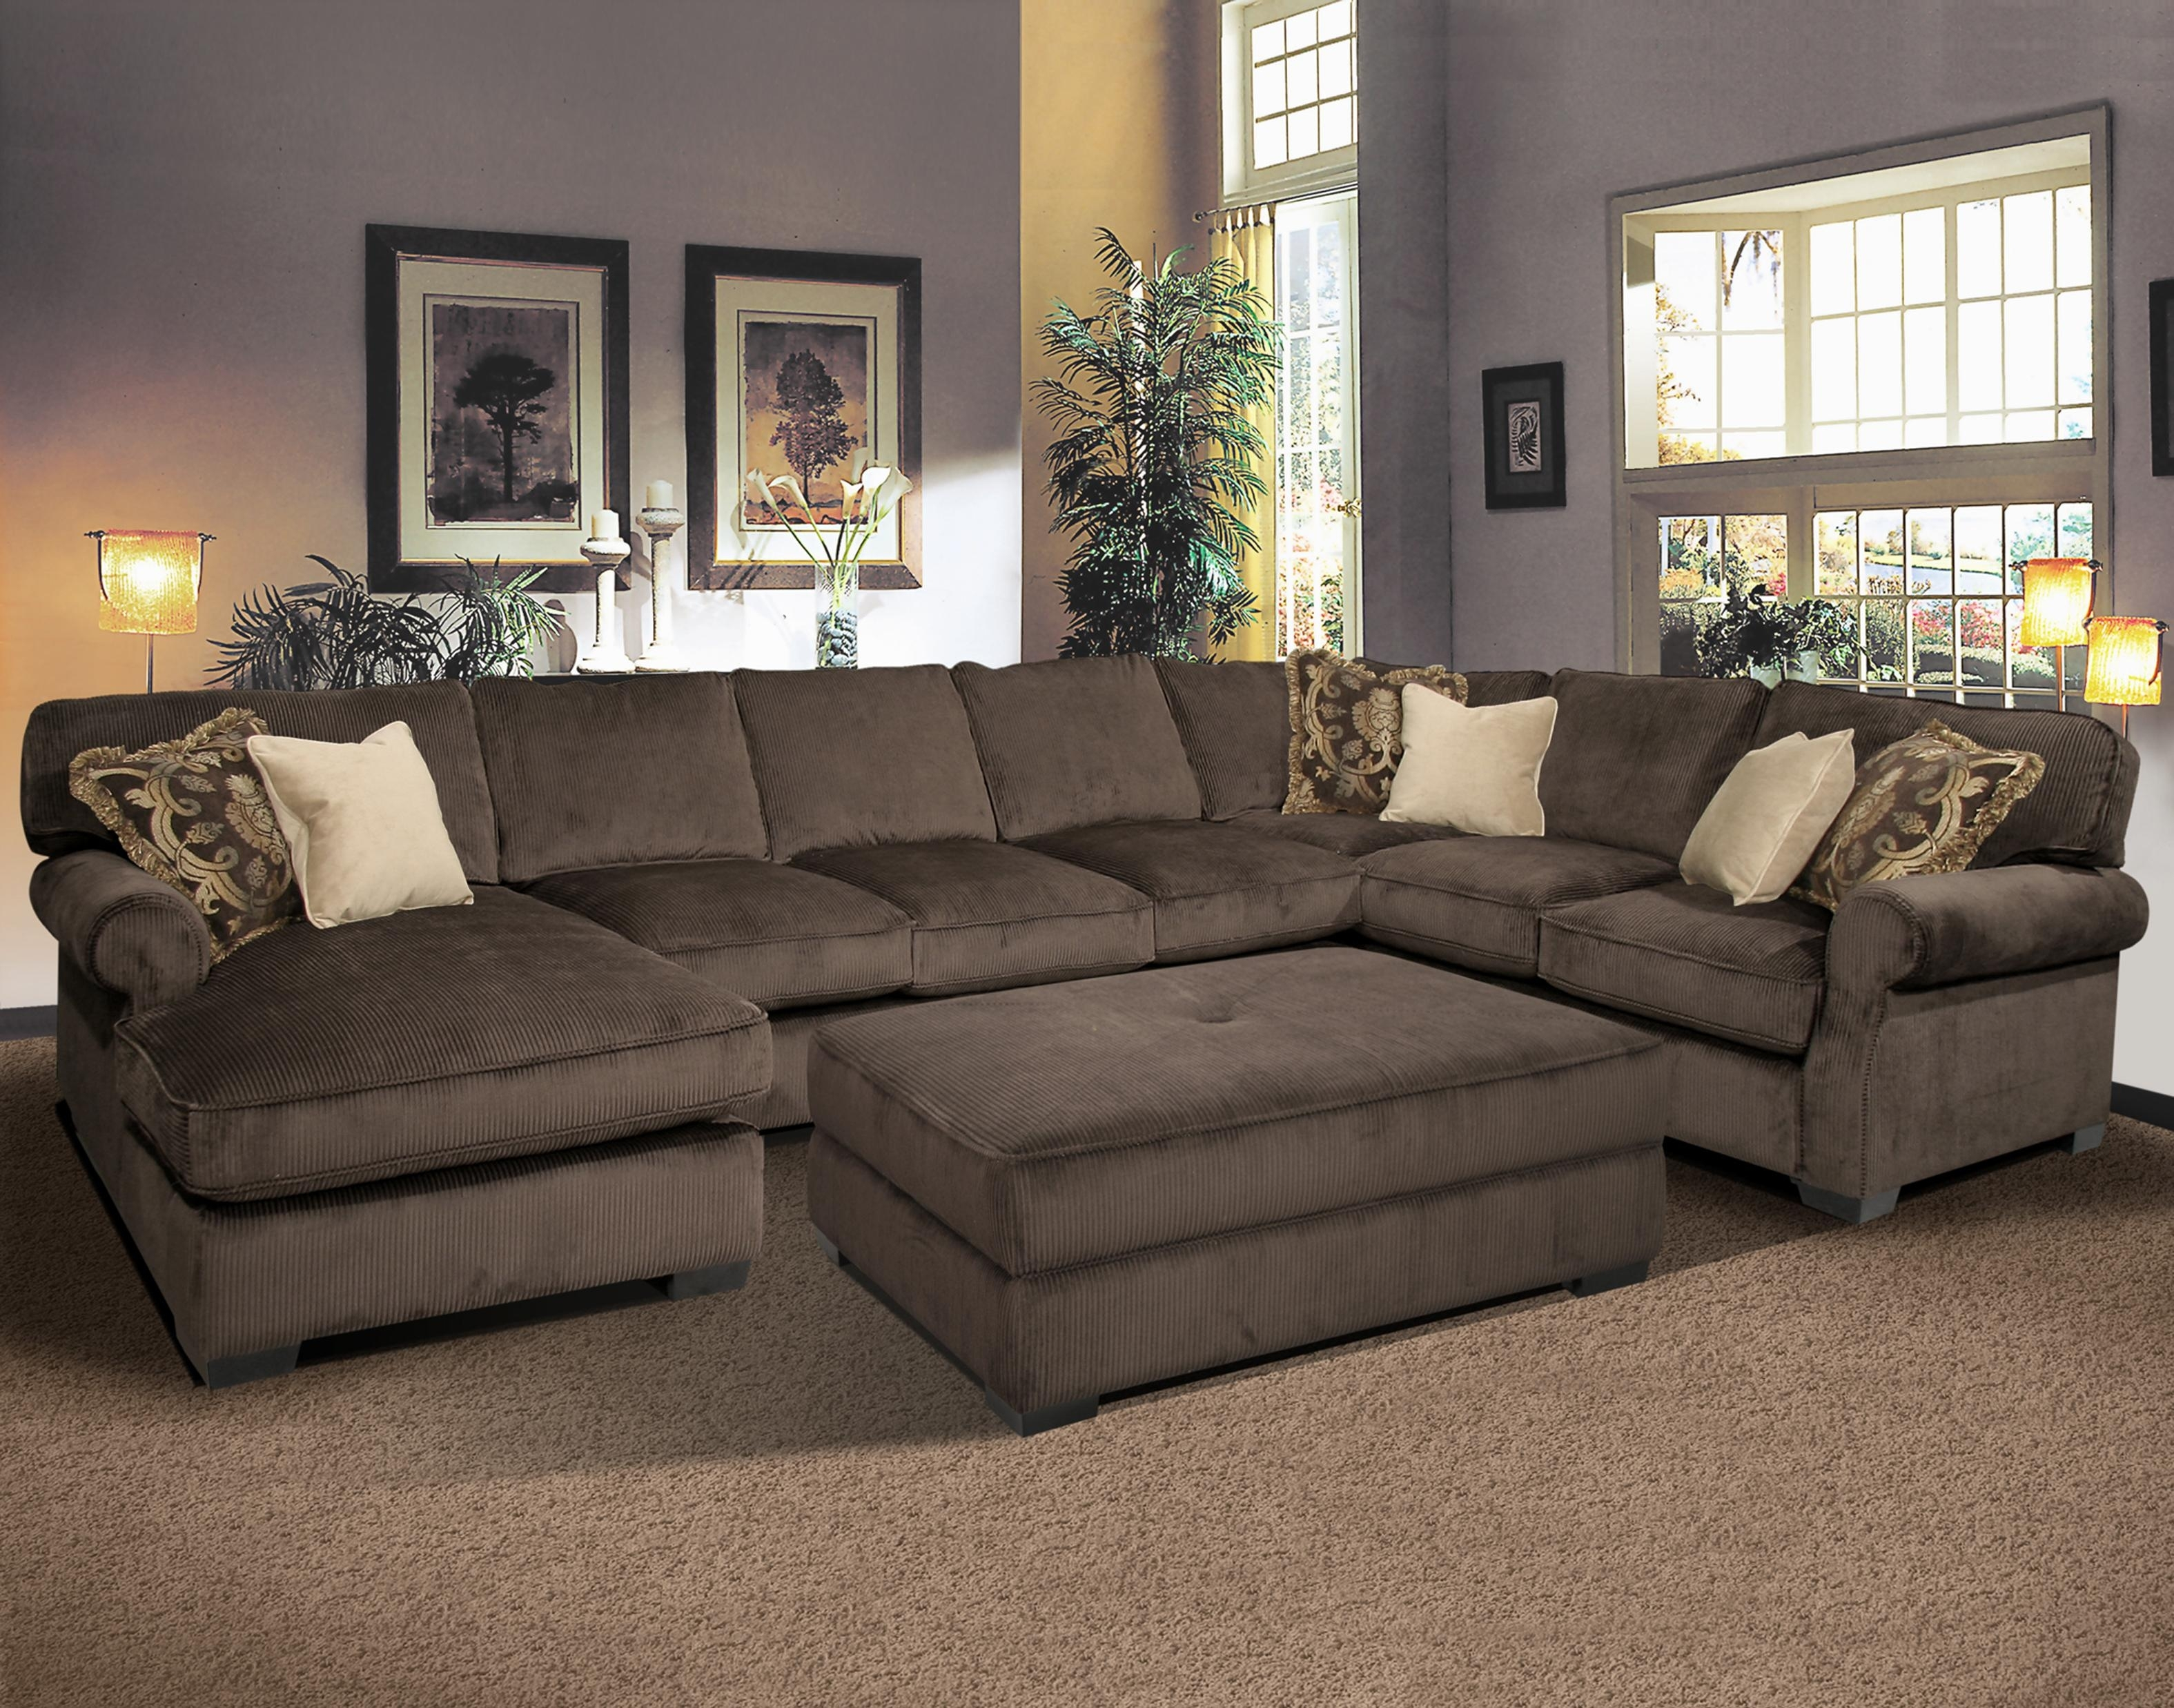 Awesome Comfy Sectional Sofas 26 For Sleeper Sectional Sofa For In Comfy Sectional Sofas (View 1 of 10)